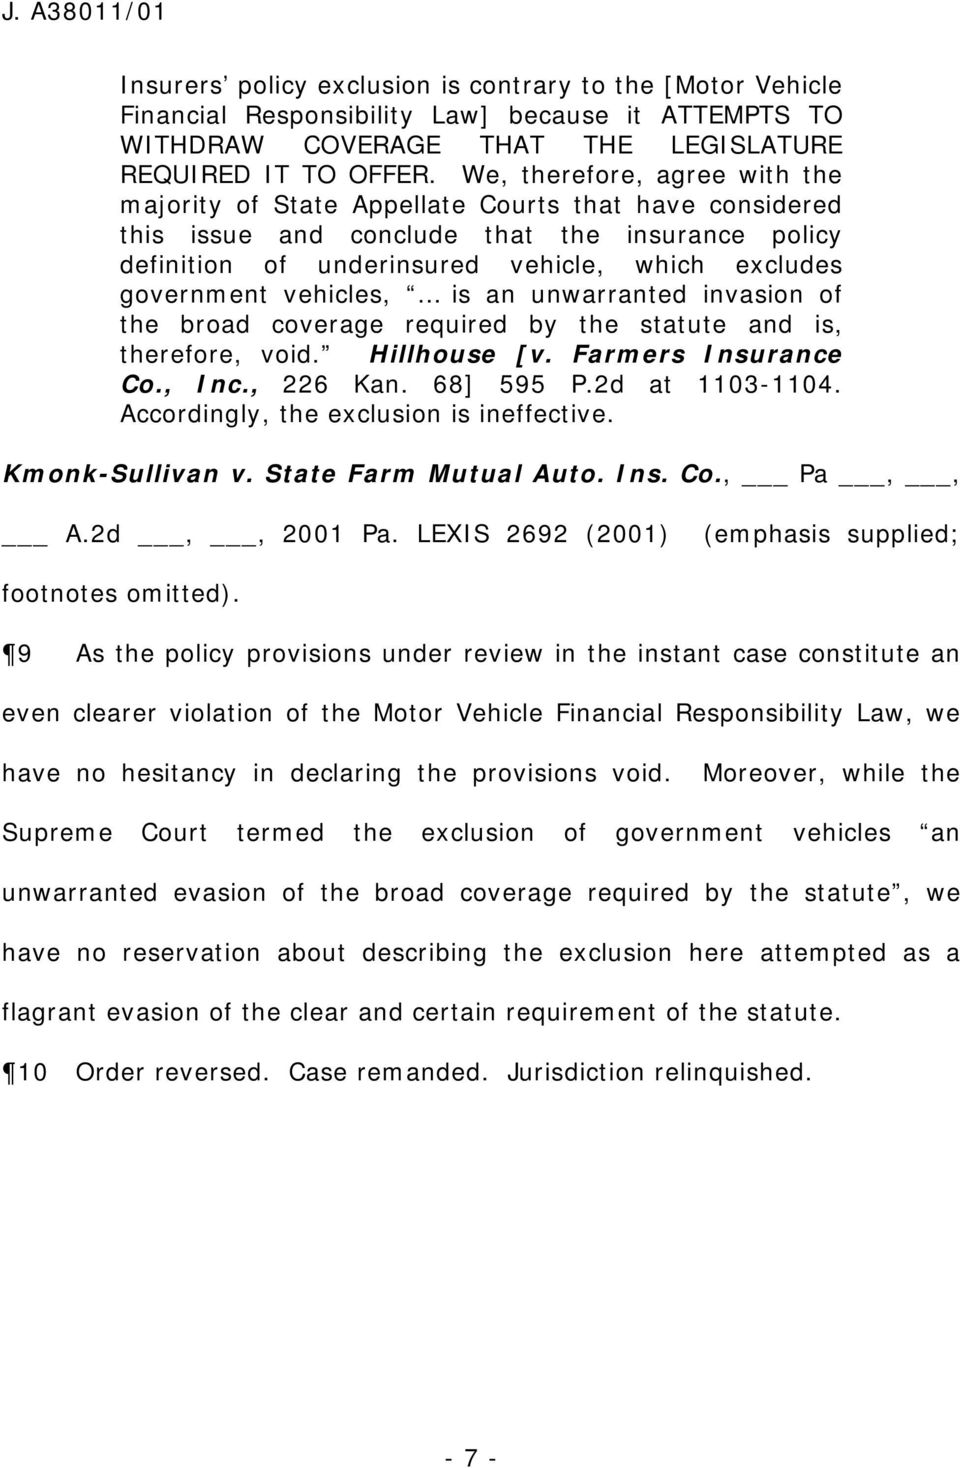 vehicles, is an unwarranted invasion of the broad coverage required by the statute and is, therefore, void. Hillhouse [v. Farmers Insurance Co., Inc., 226 Kan. 68] 595 P.2d at 1103-1104.